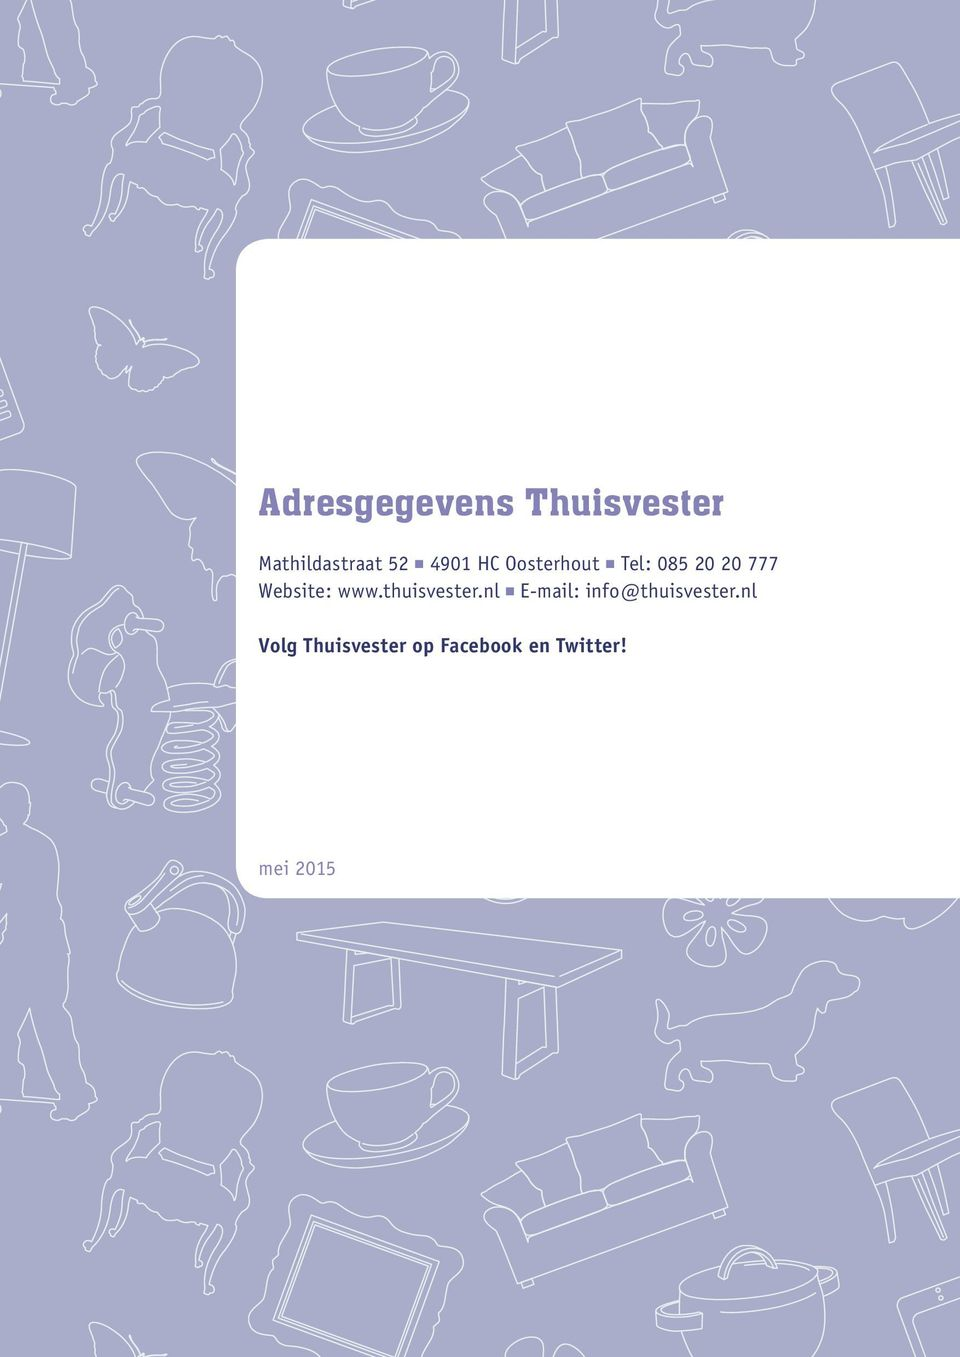 Website: www.thuisvester.